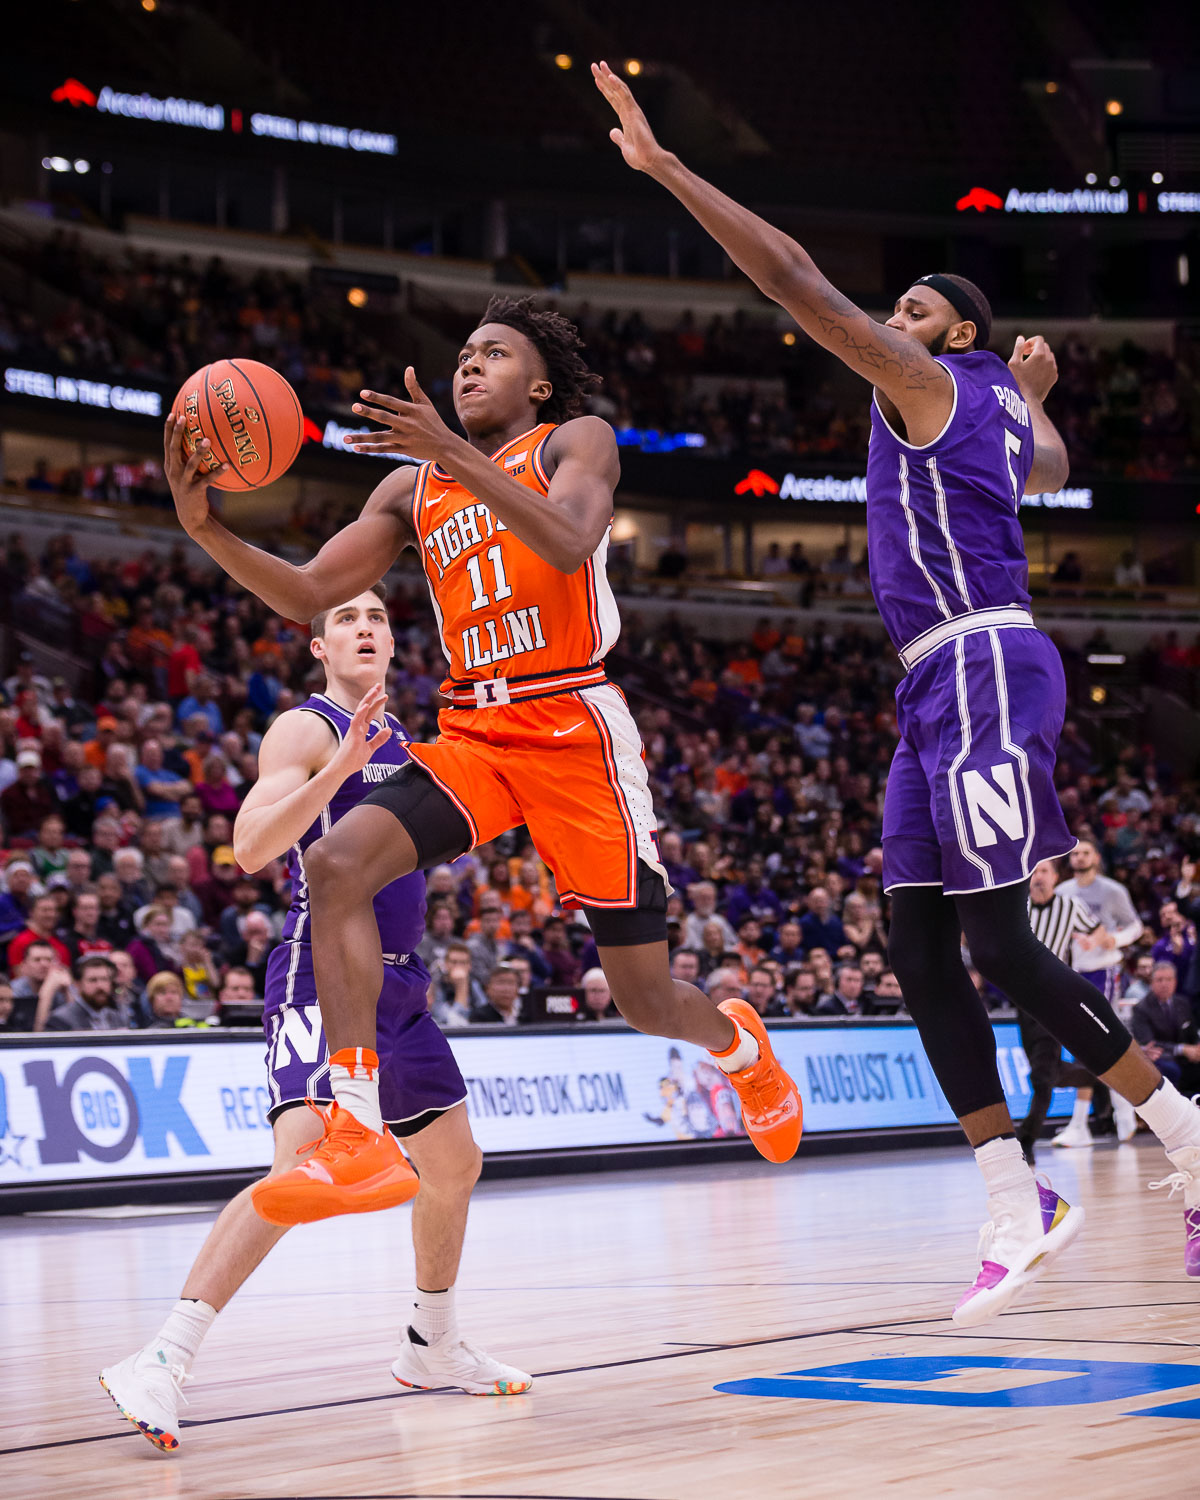 Illinois+guard+Ayo+Dosunmu+goes+up+for+a+layup+during+the+game+against+Northwestern+in+the+first+round+of+the+Big+Ten+Tournament+at+the+United+Center+on+Wednesday.